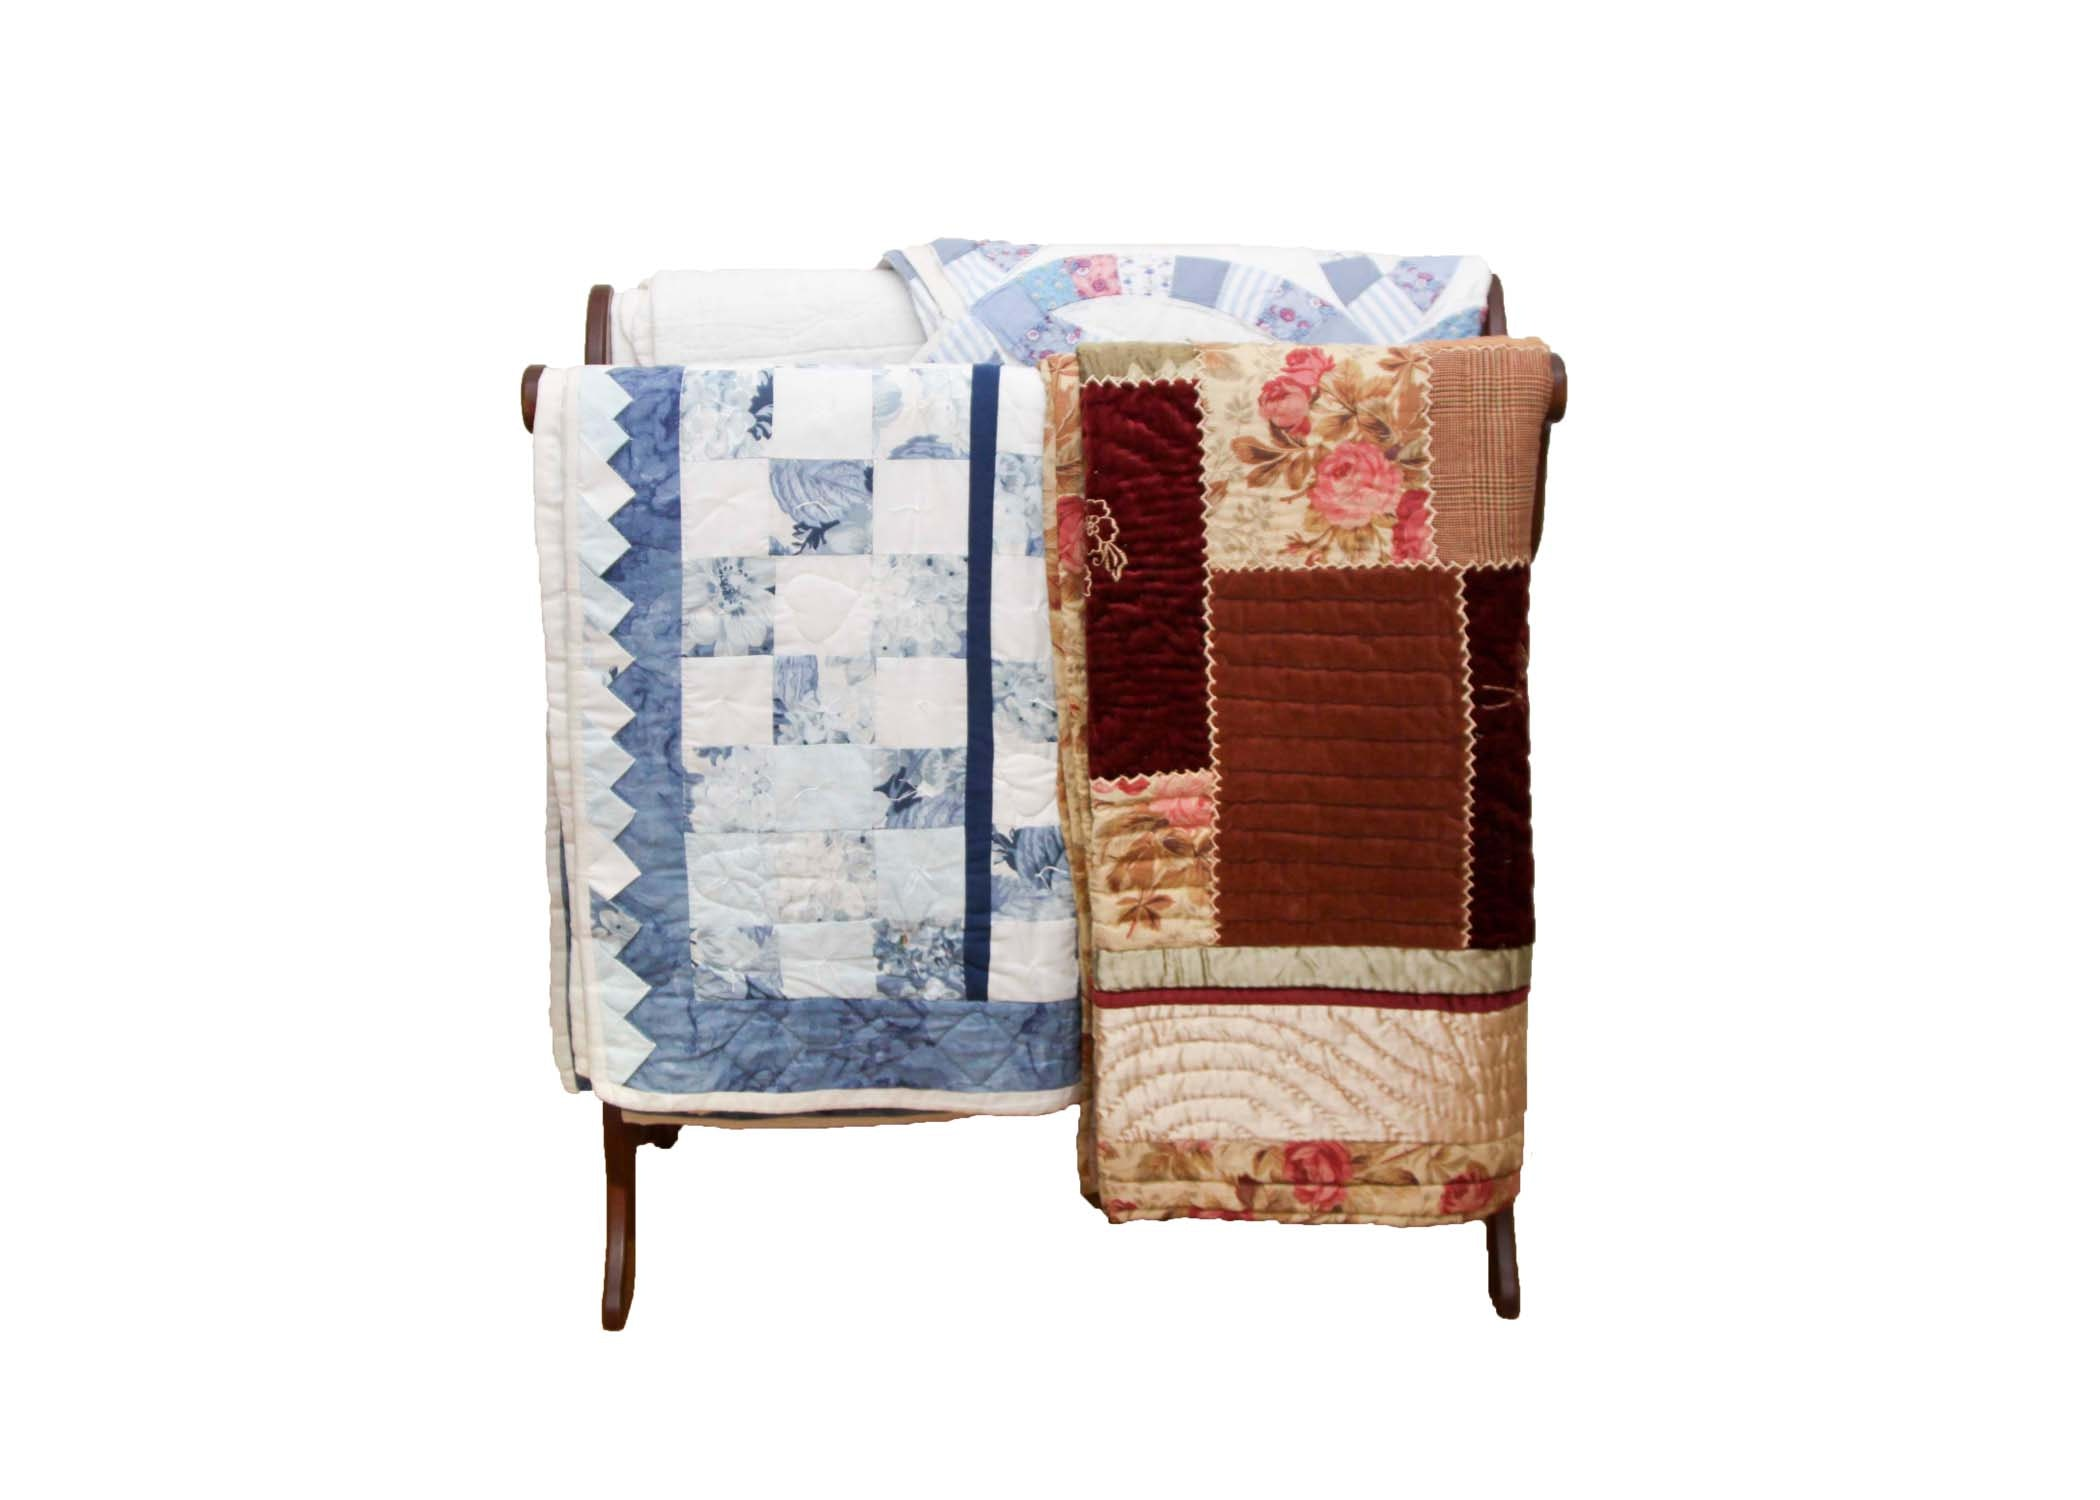 Quilt Stand and Quilts